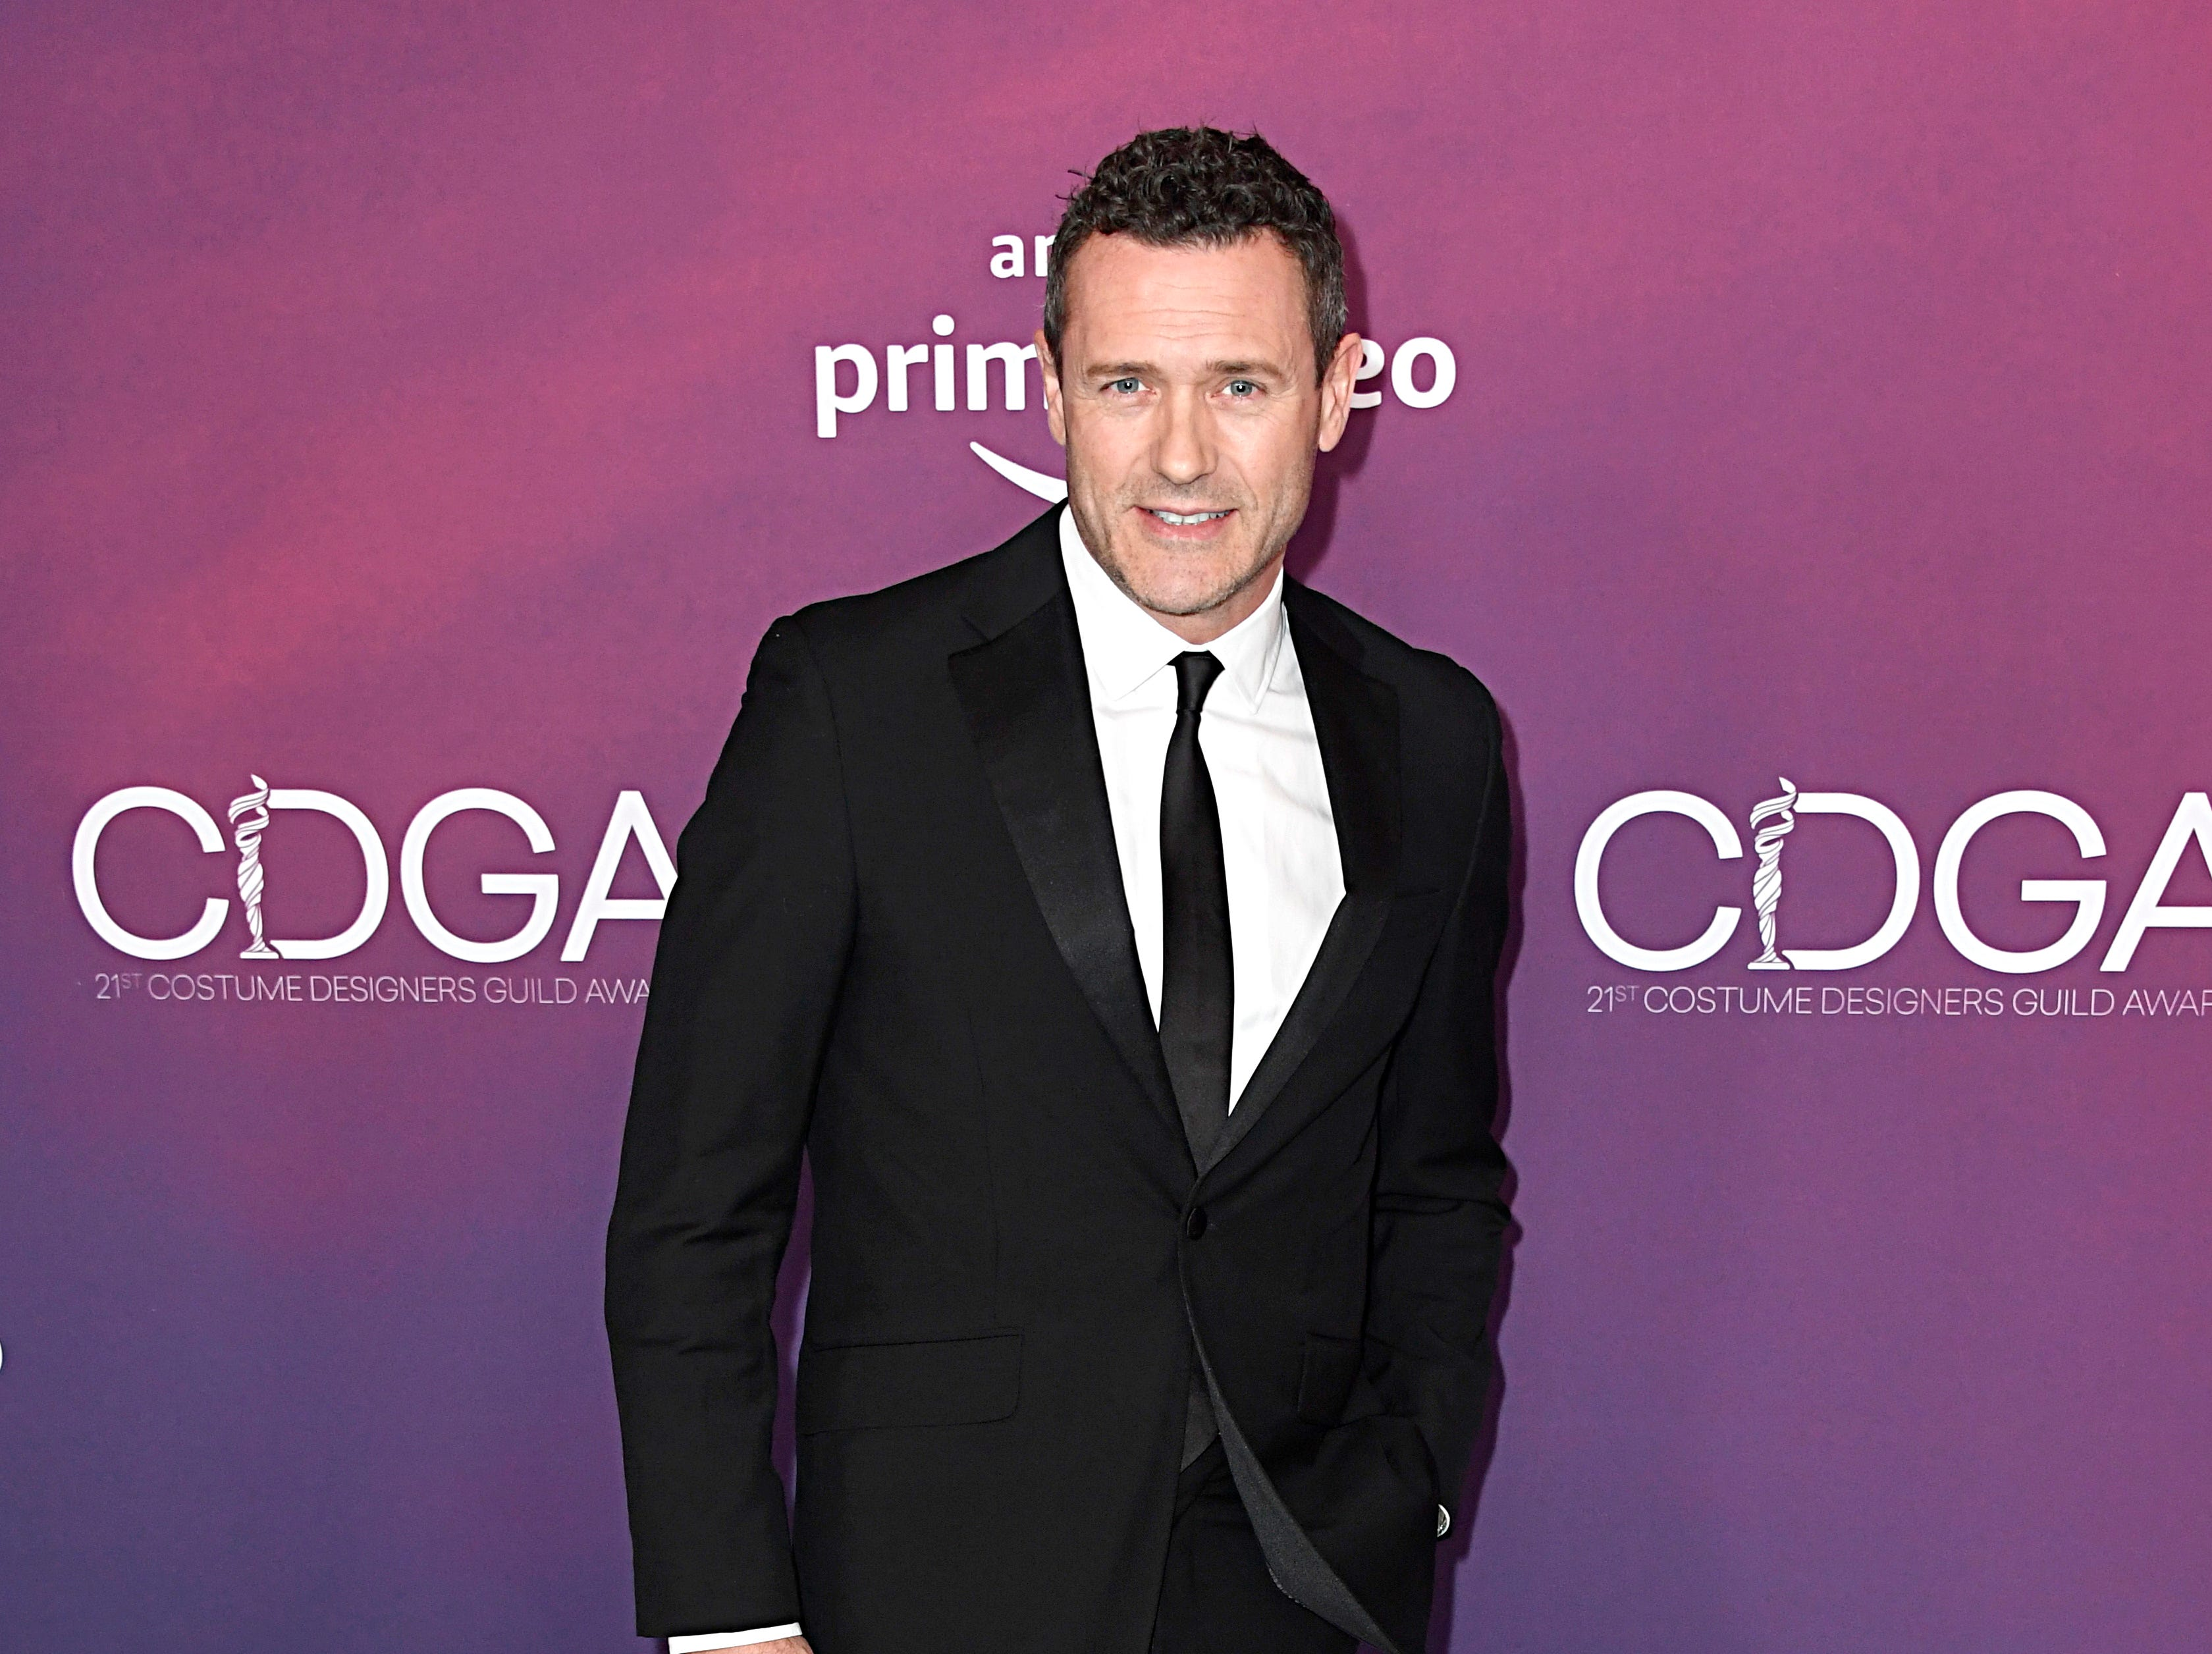 BEVERLY HILLS, CALIFORNIA - FEBRUARY 19: Jason O'Mara attends The 21st CDGA (Costume Designers Guild Awards) at The Beverly Hilton Hotel on February 19, 2019 in Beverly Hills, California. (Photo by Frazer Harrison/Getty Images) ORG XMIT: 775282683 ORIG FILE ID: 1130826886